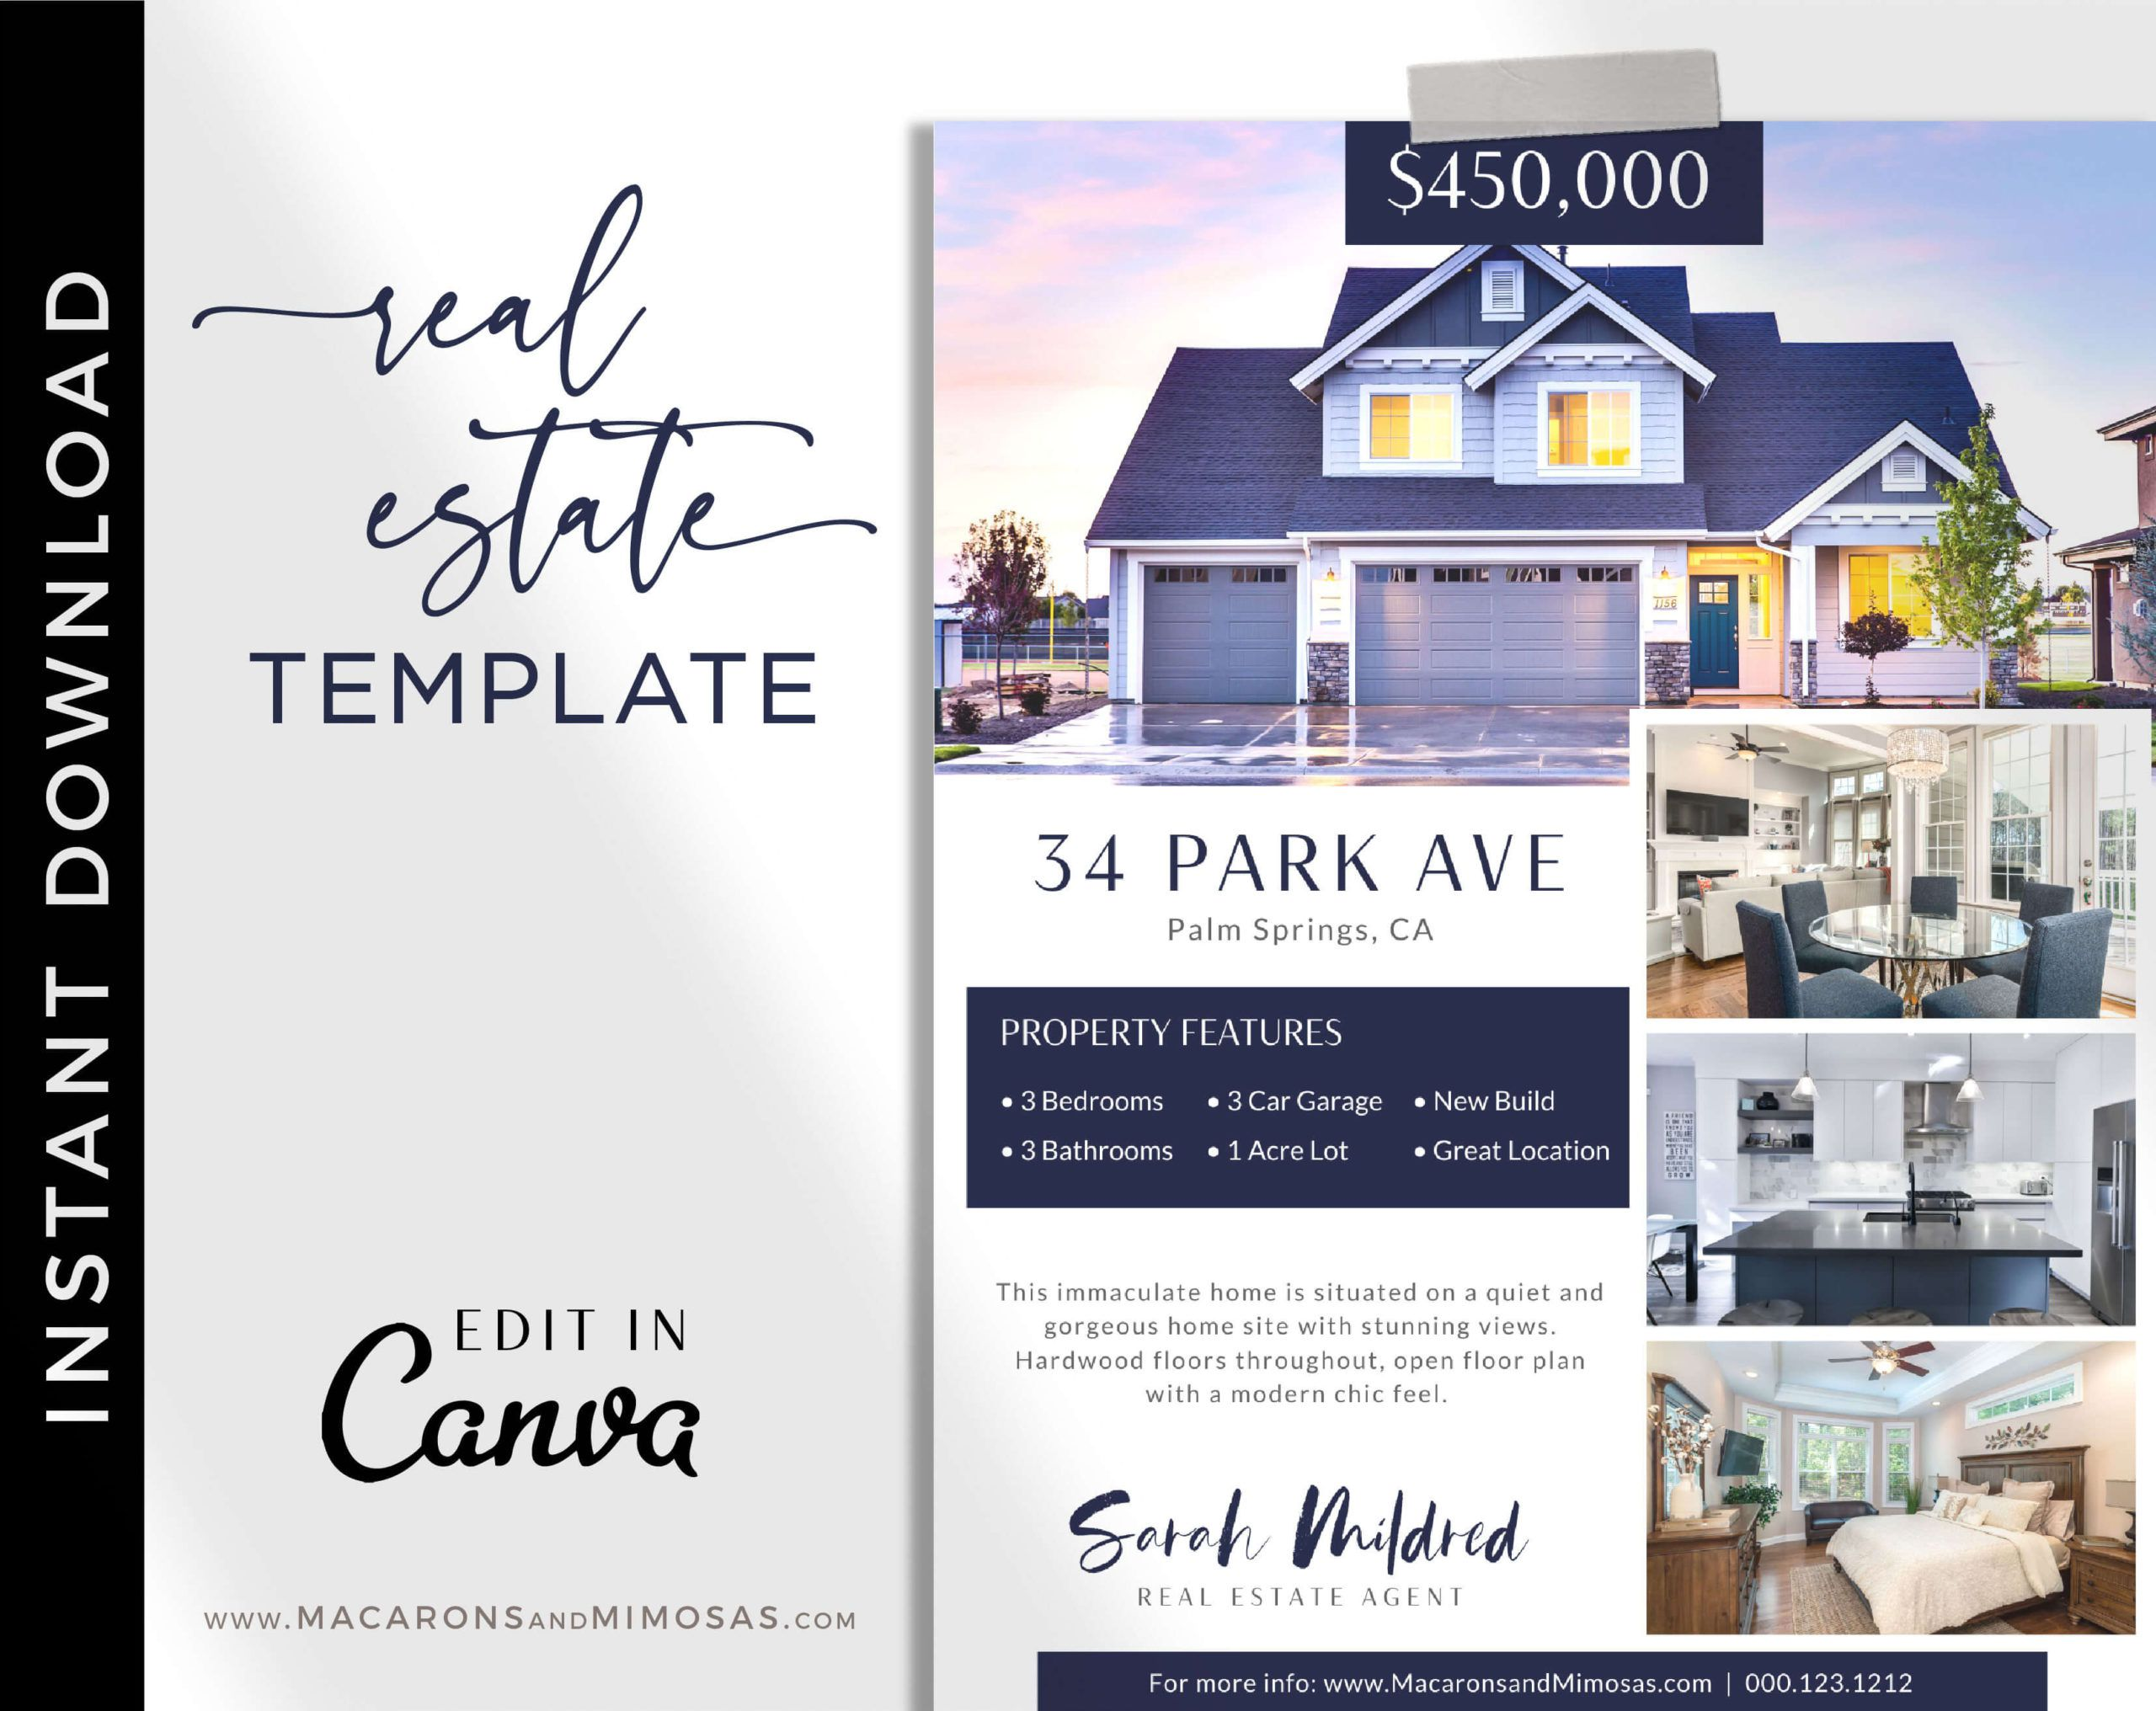 006 Formidable Open House Flyer Template High Definition  Templates Word Free School MicrosoftFull